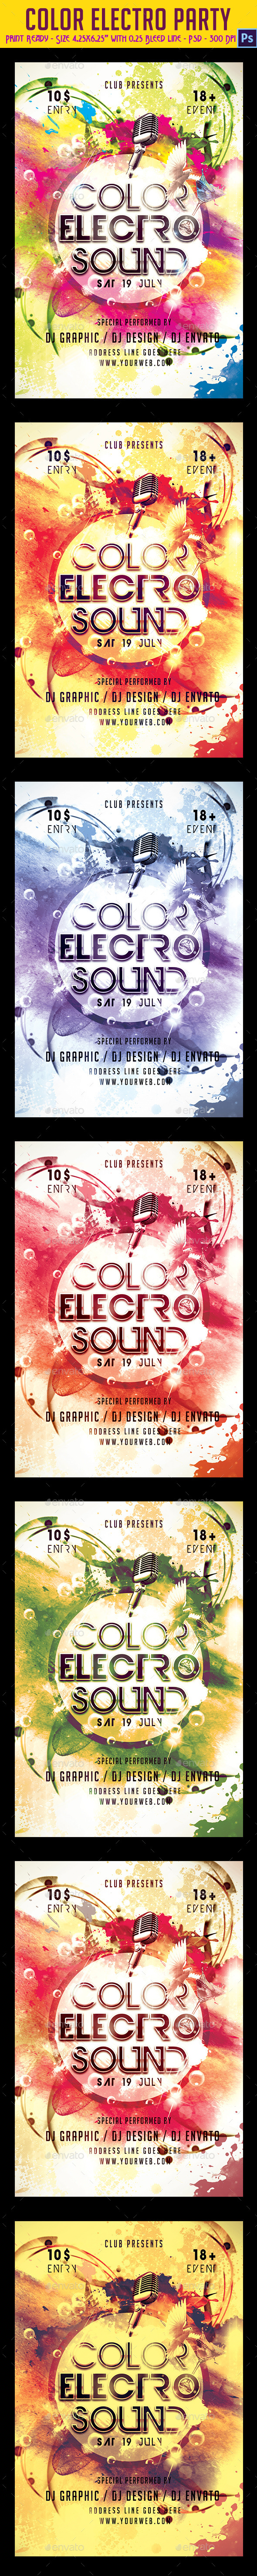 GraphicRiver Color Electro Party Flyer 9577763